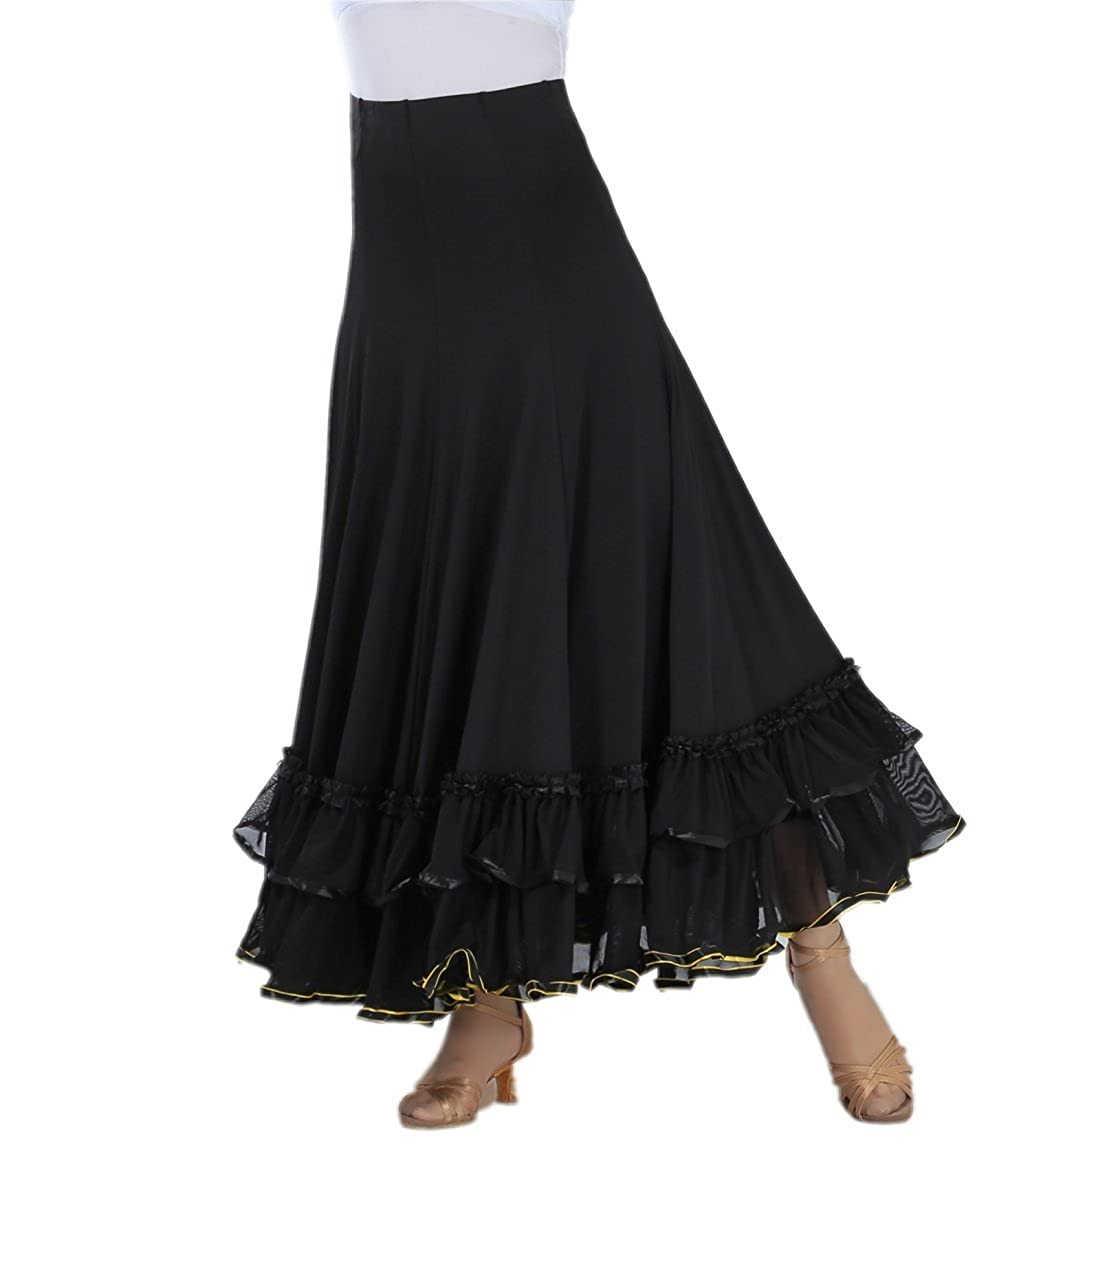 Steampunk Skirts | Bustle Skirts, Lace Skirts, Ruffle Skirts CISMARK Elegant Ballroom Dancing Latin Dance Party Long Swing Race Skirt $39.99 AT vintagedancer.com